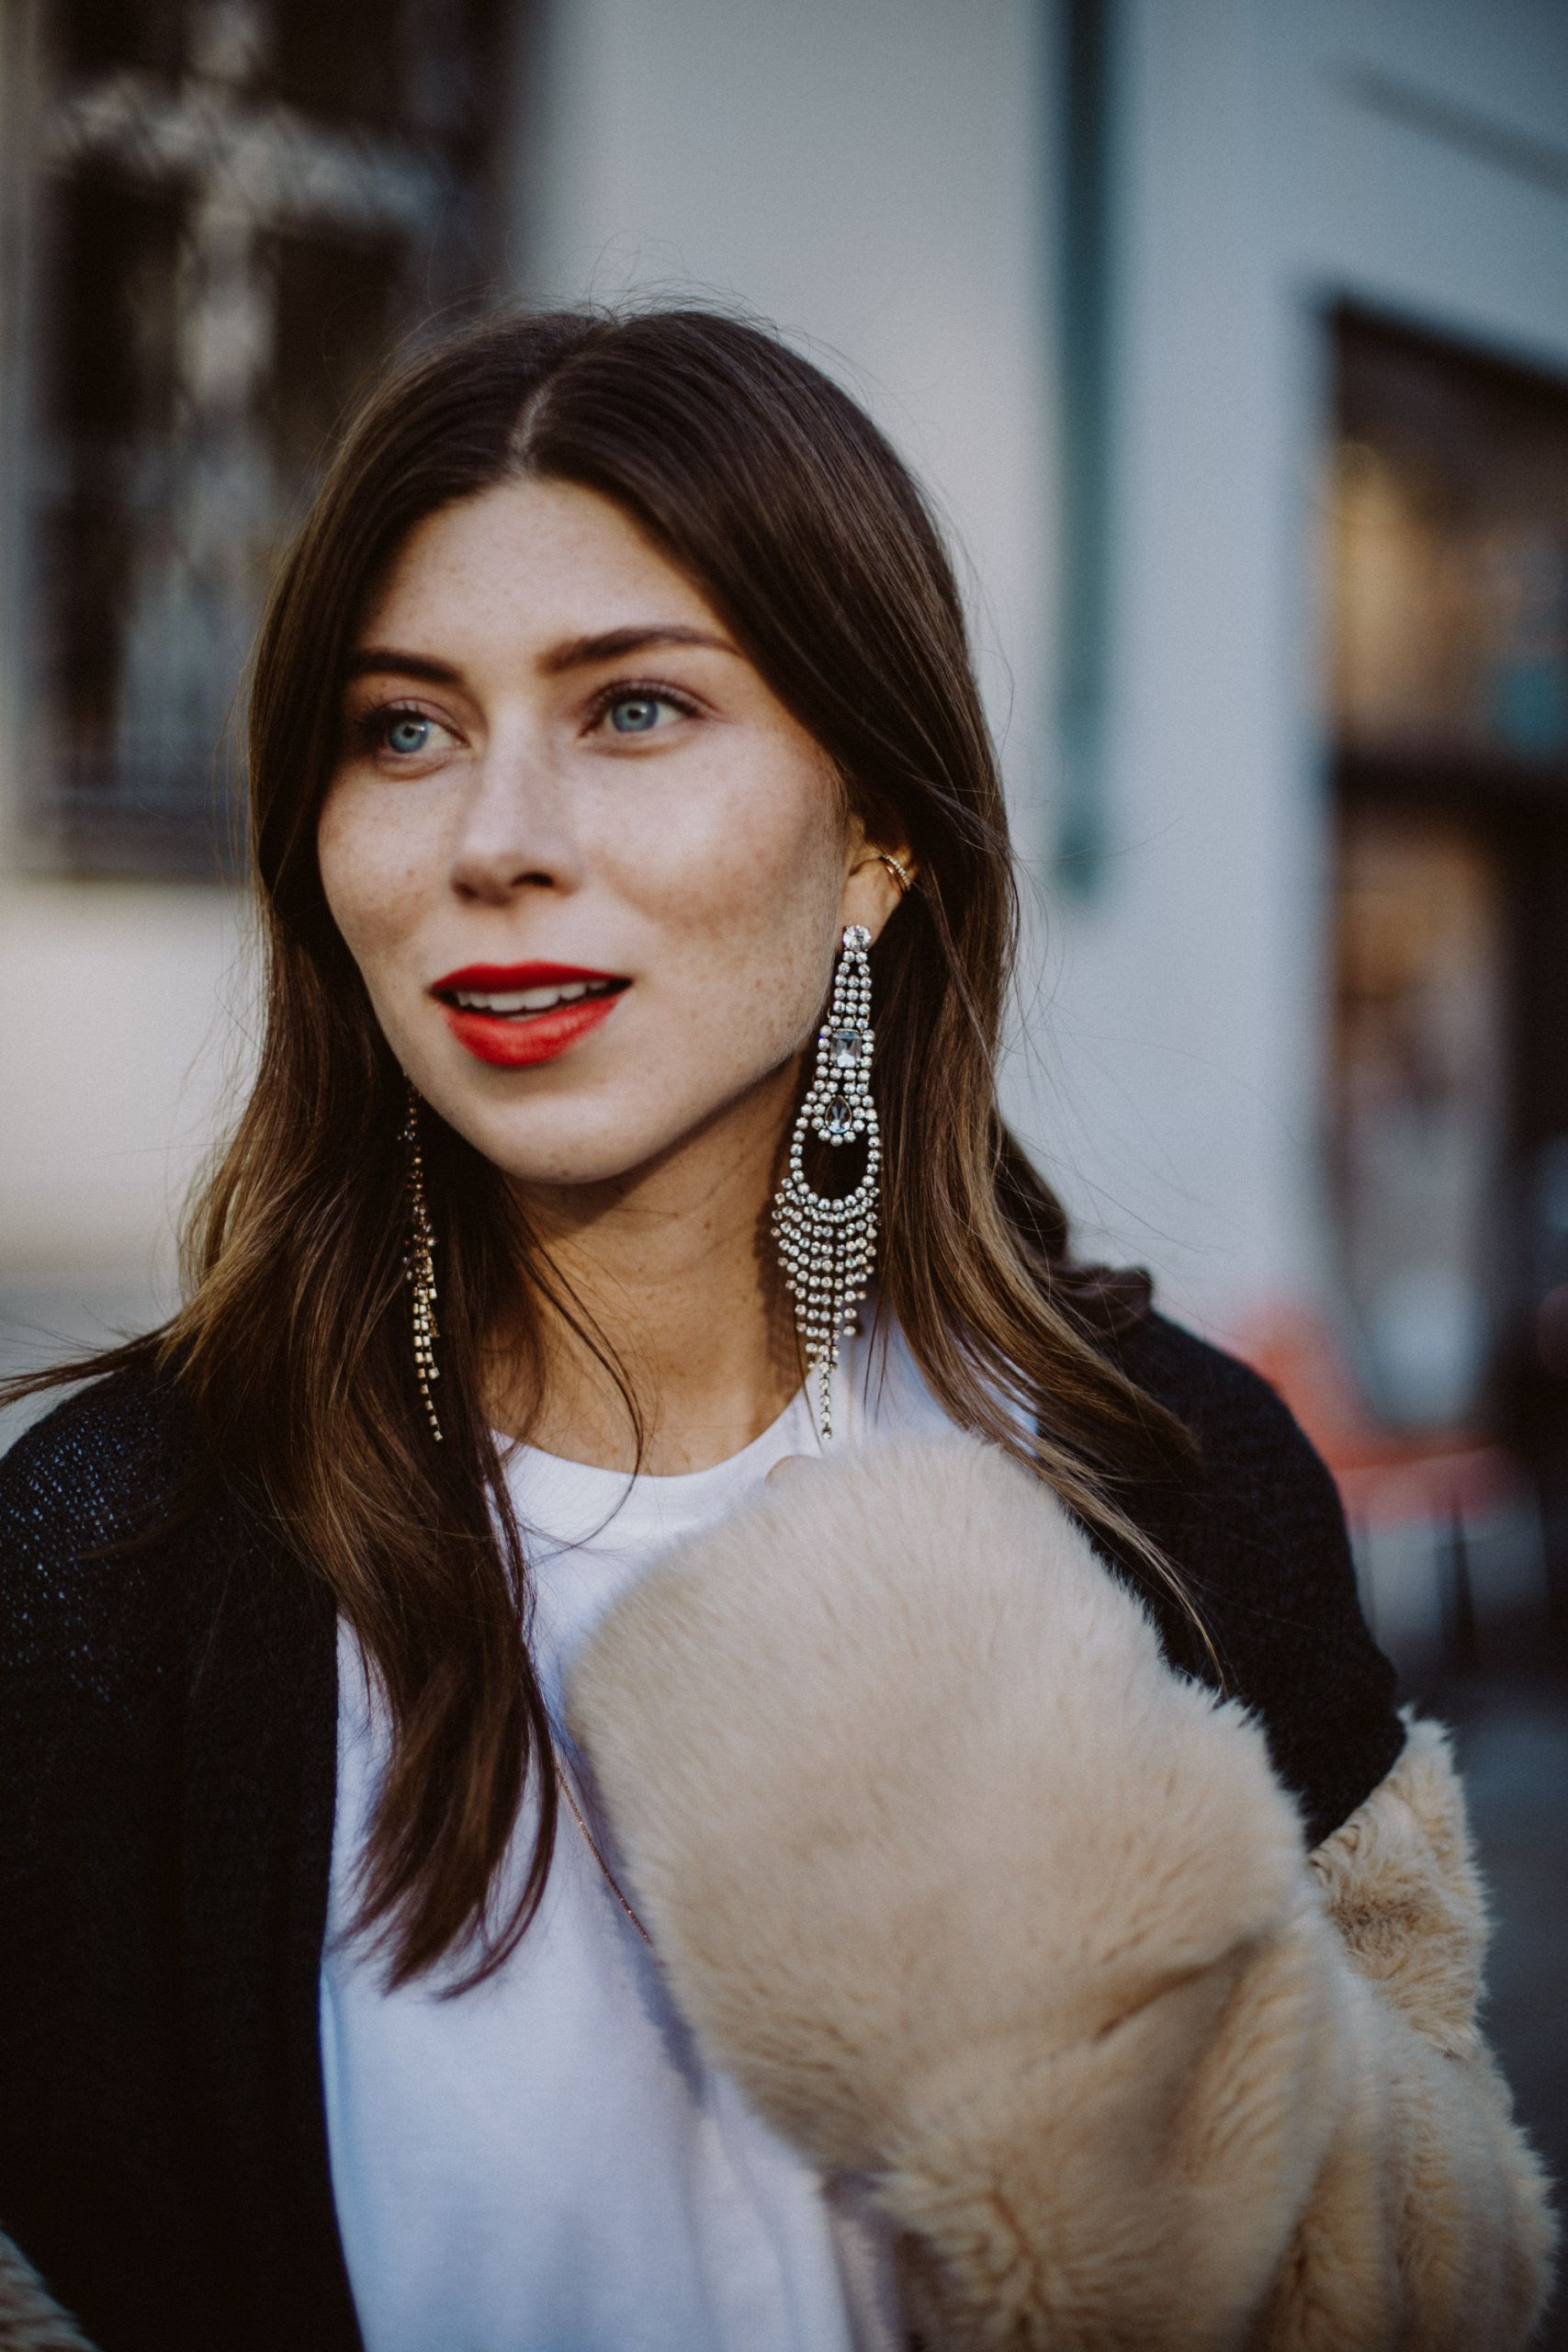 Editor's Pick: Big & Sparkly Earrings | The Daily Dose